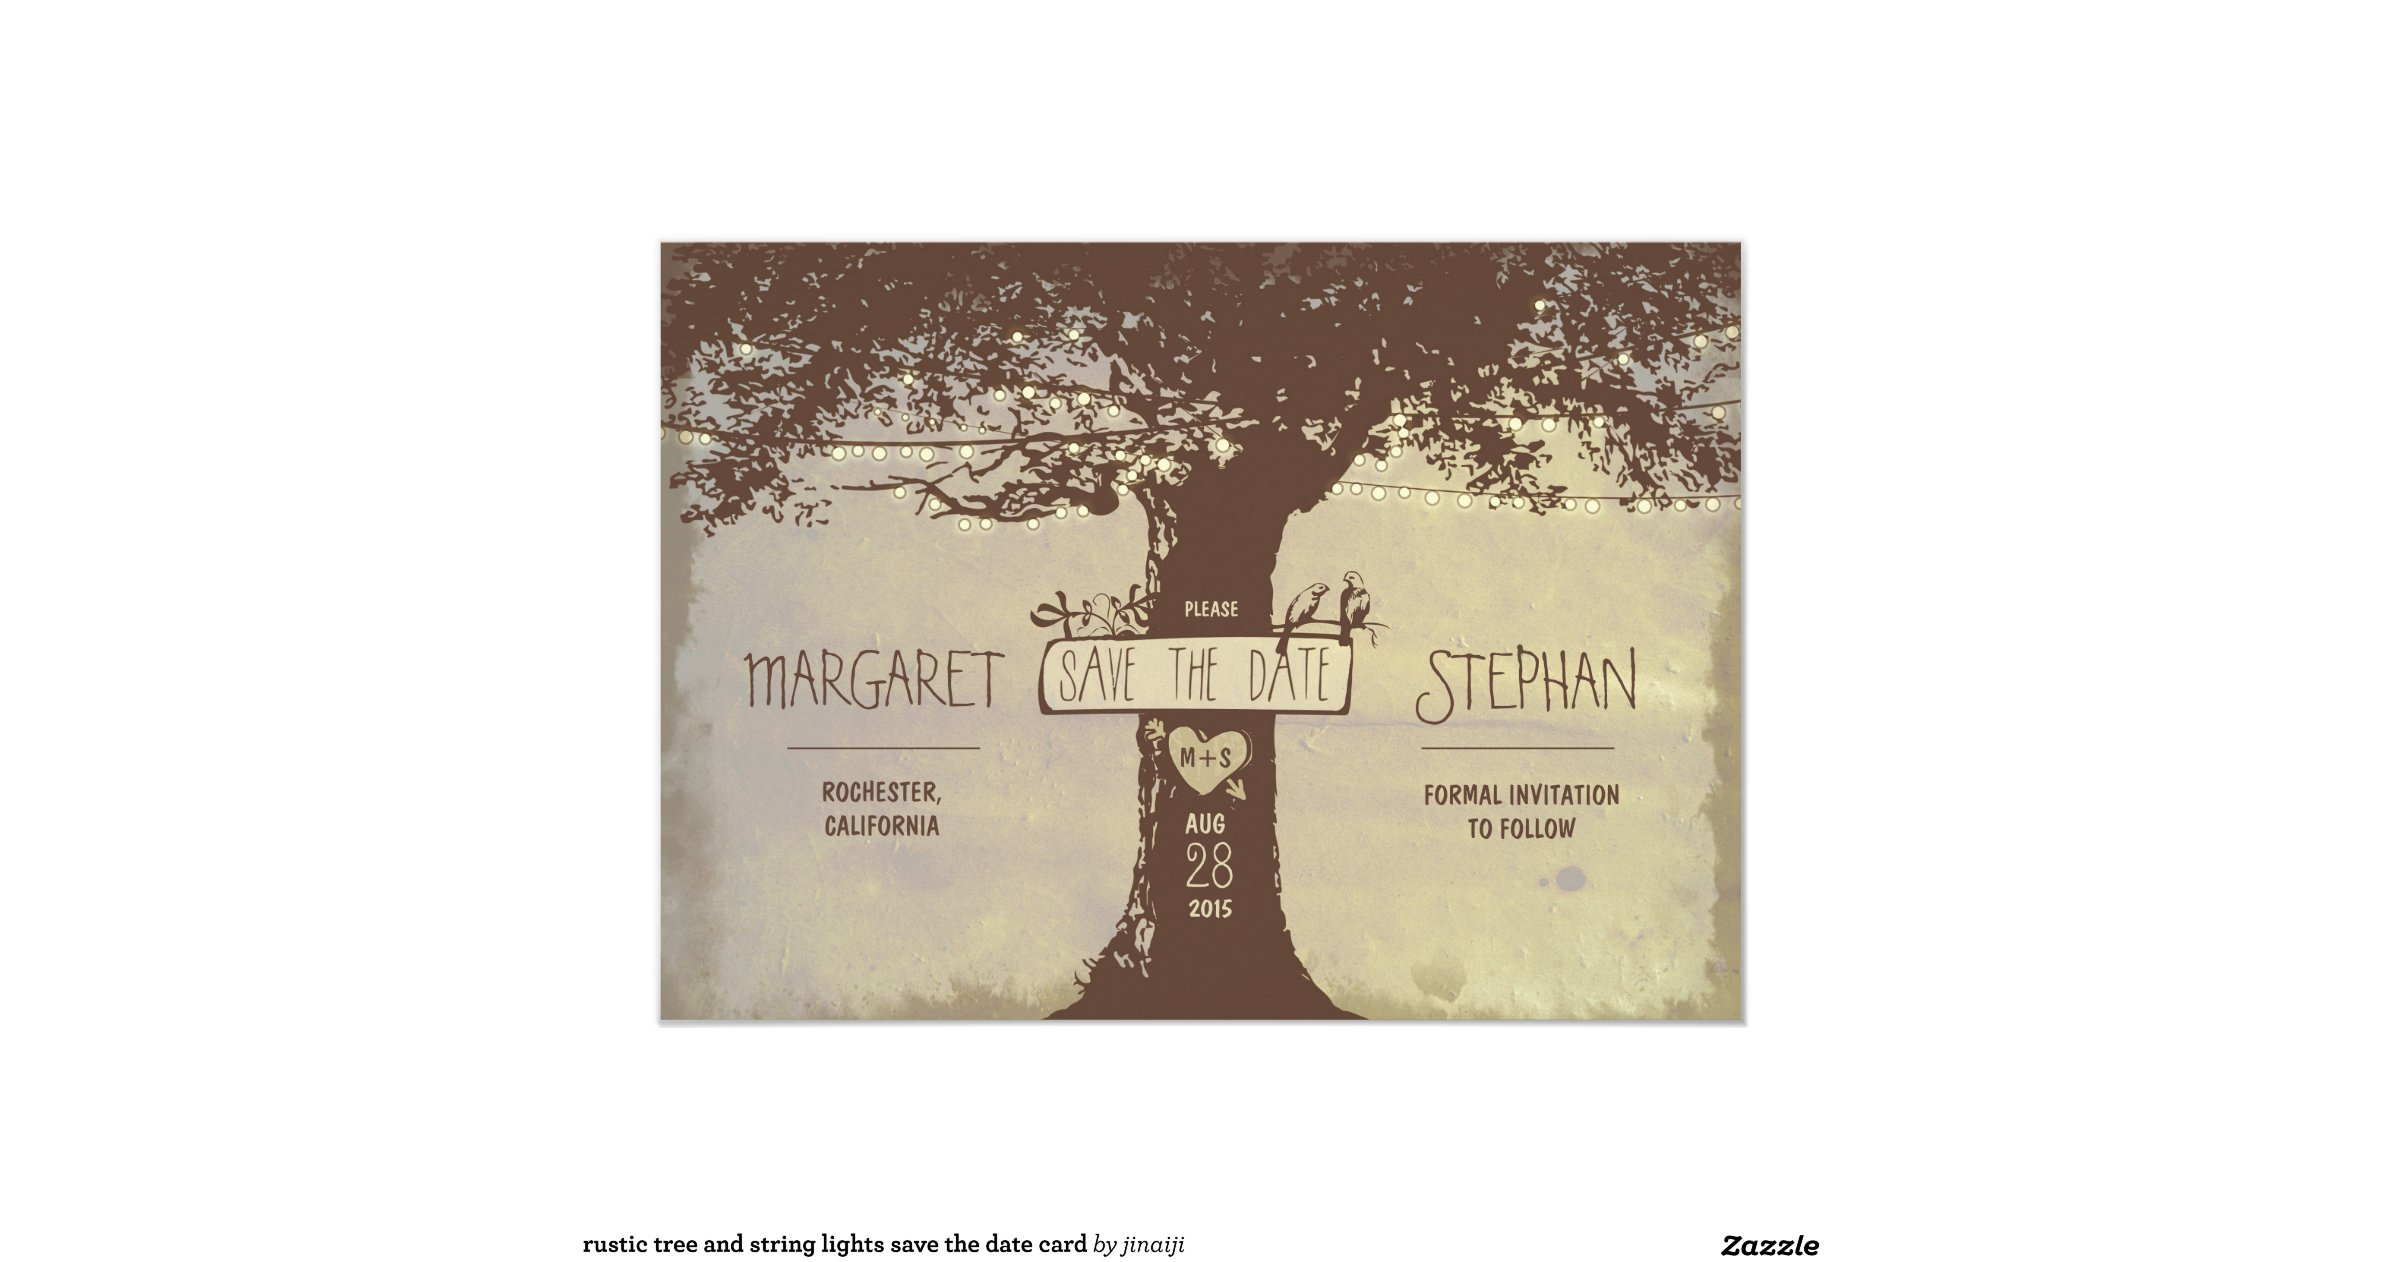 String Lights Rustic Tree : rustic_tree_and_string_lights_save_the_date_card-rd28debe753f344eab3837d0abc59bc41_zk9li_1200 ...